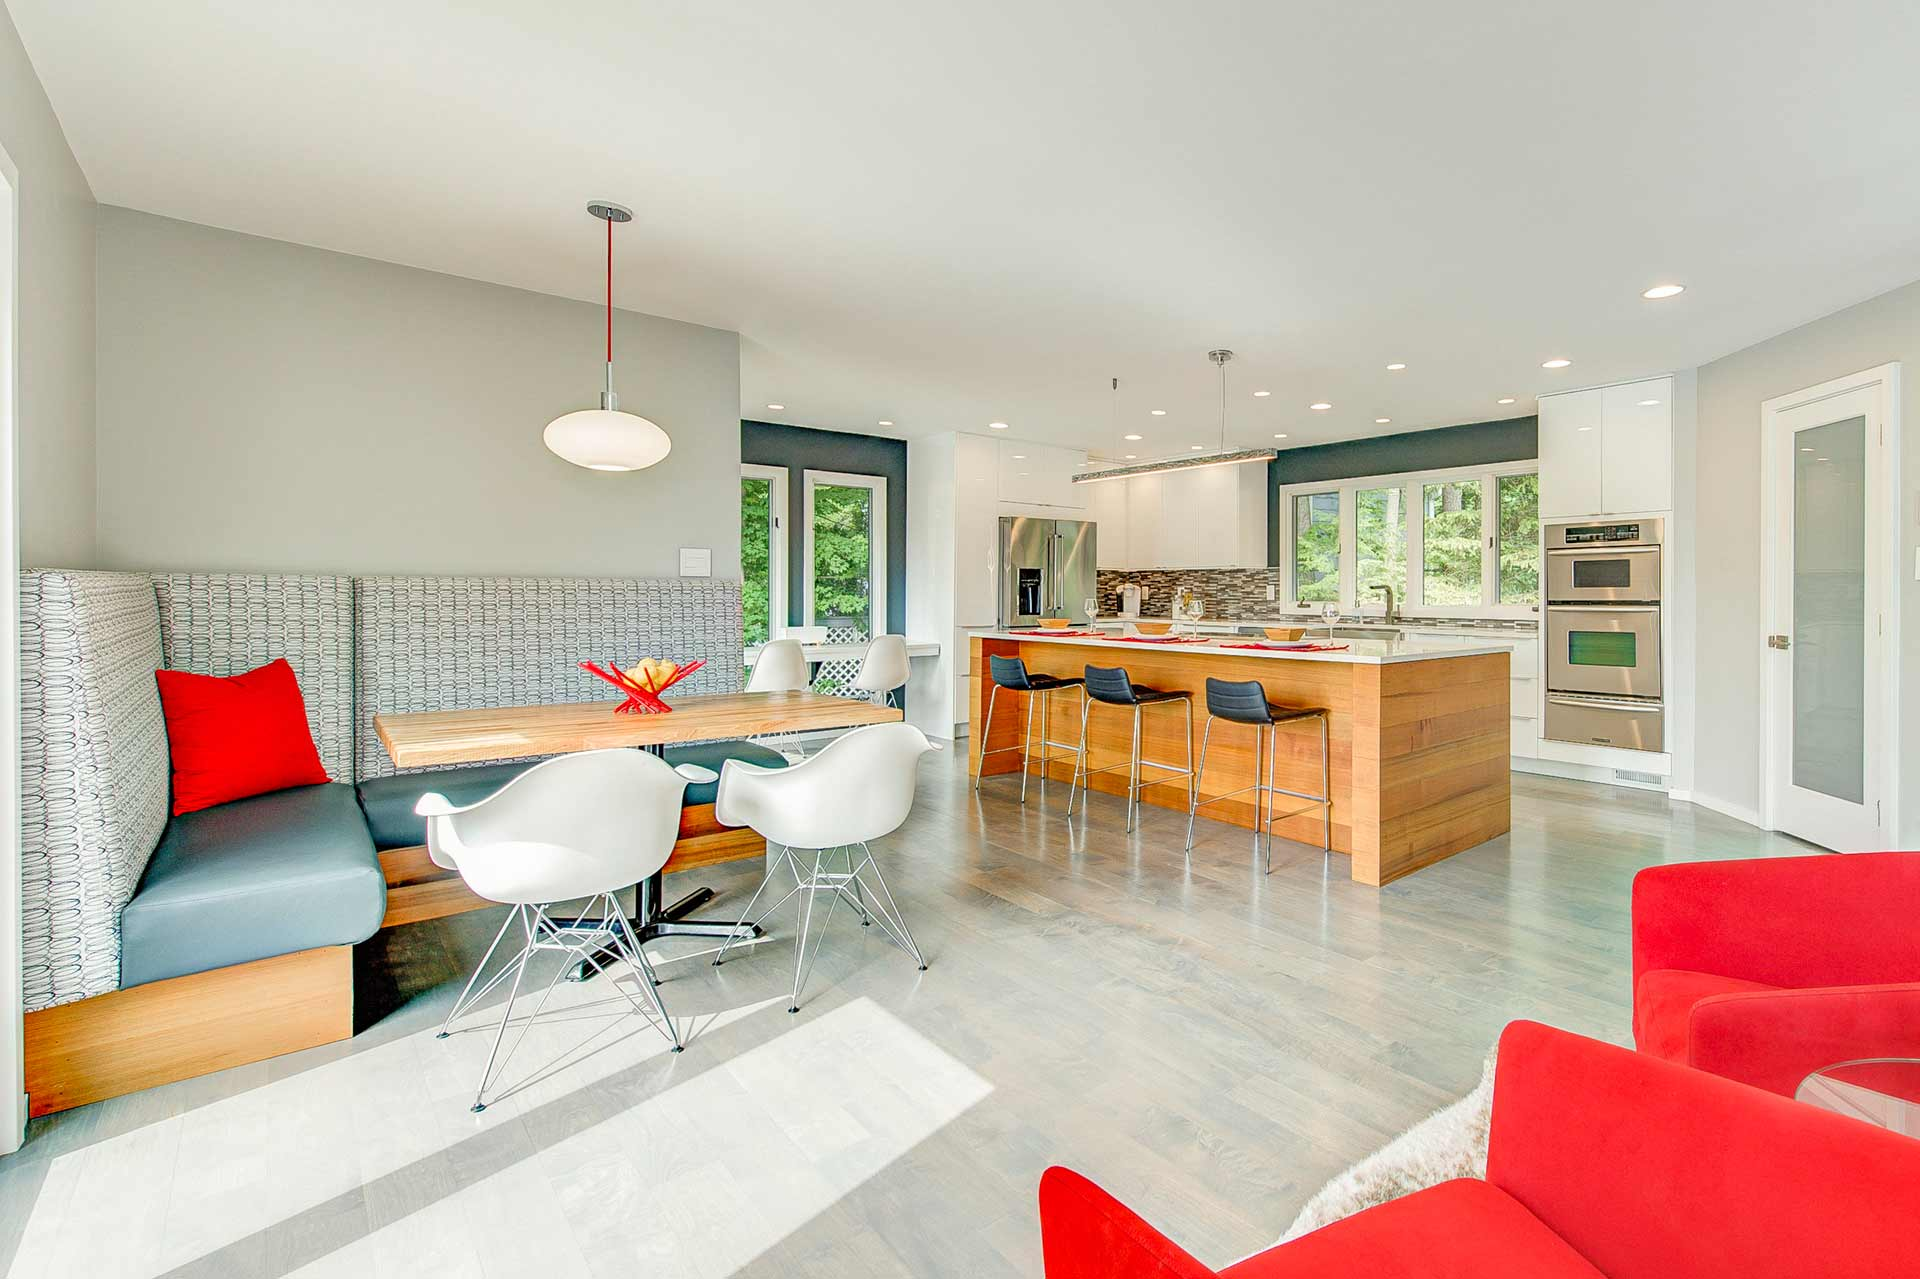 Cedar Wrapped Kitchen Island + White Cabinets and White Quartz Tops - kitchen booth seating - red chairs - Reef Court Light Renovation - Geist Reservoir - Indianapolis, IN - Photo by Structured Photography